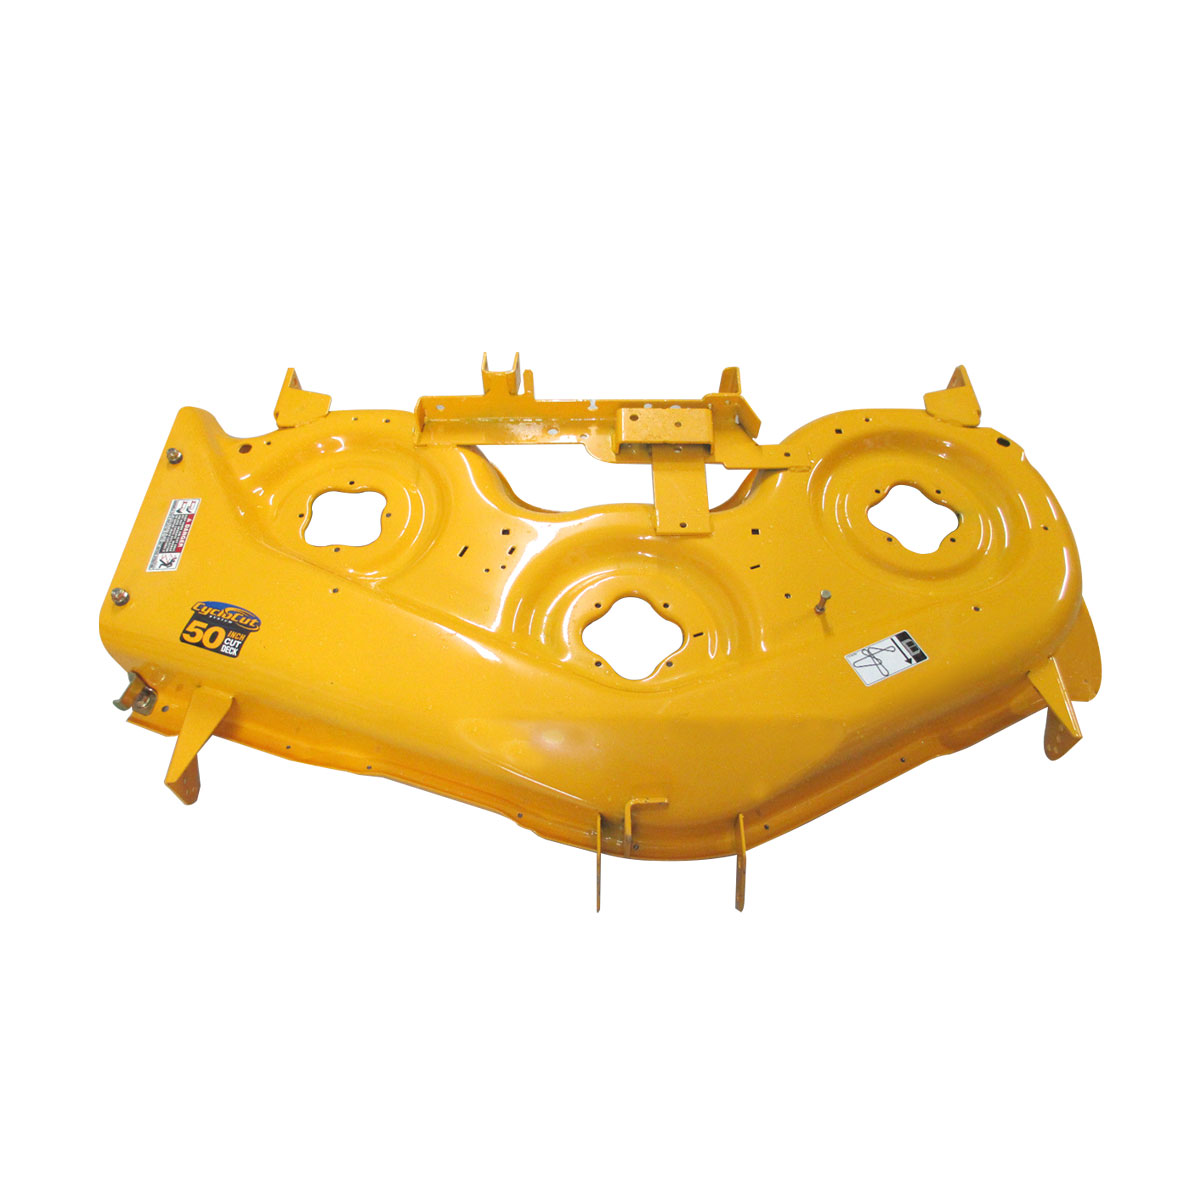 """Cub Cadet 50"""" Deck Shell Replacement (Yellow, LTX) for Lawn Tractors & Others   983-04561-4021 by Cub Cadet"""